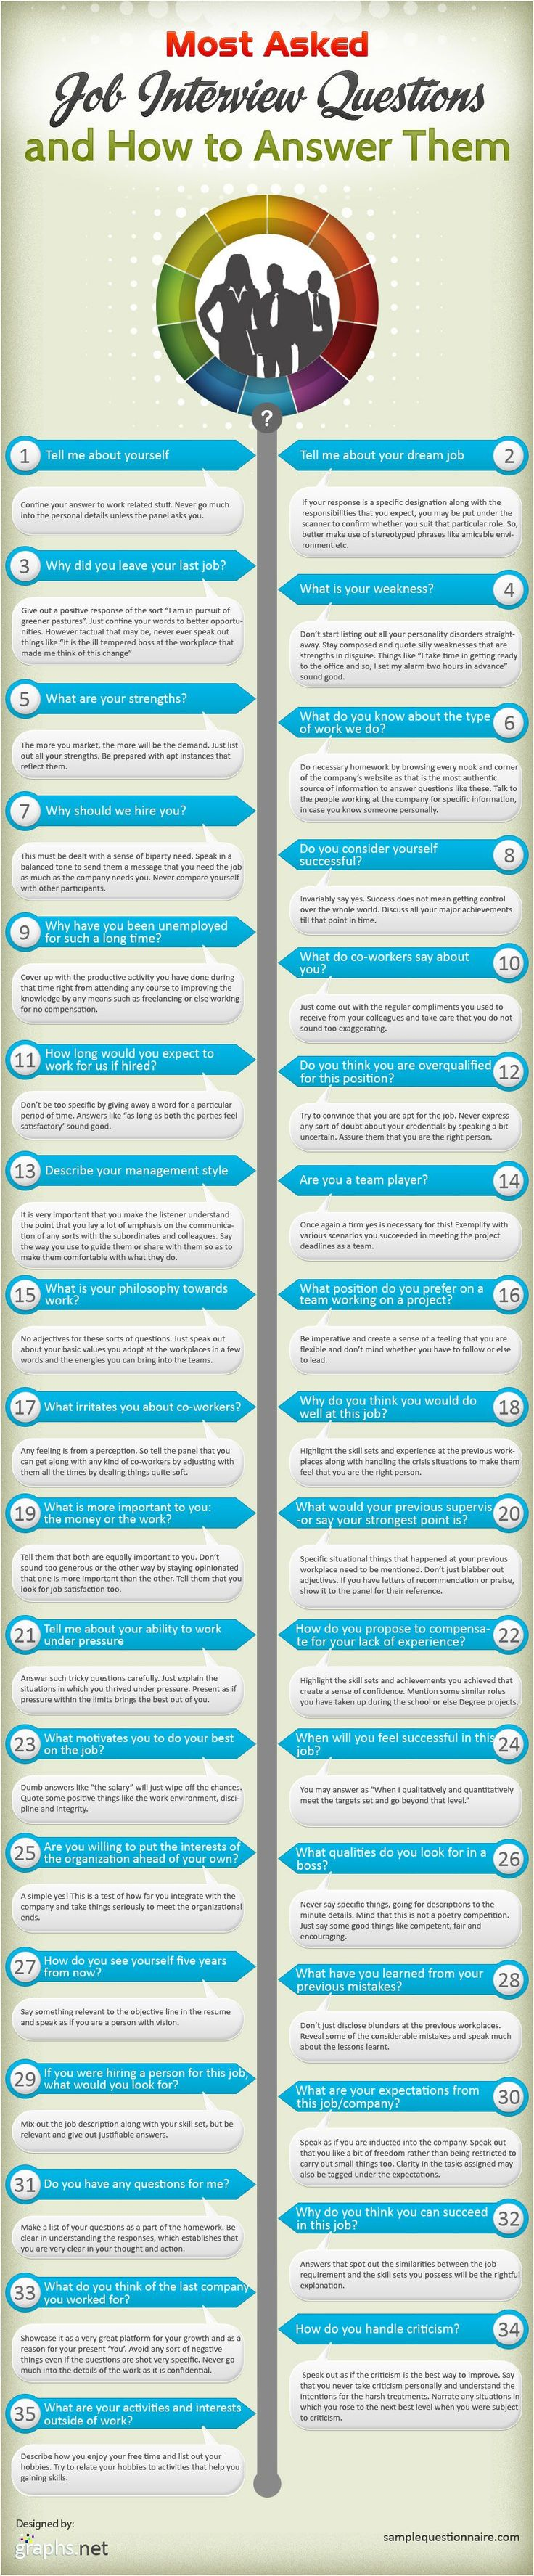 Most Frequently Asked Interview Questions and How to Answer Them